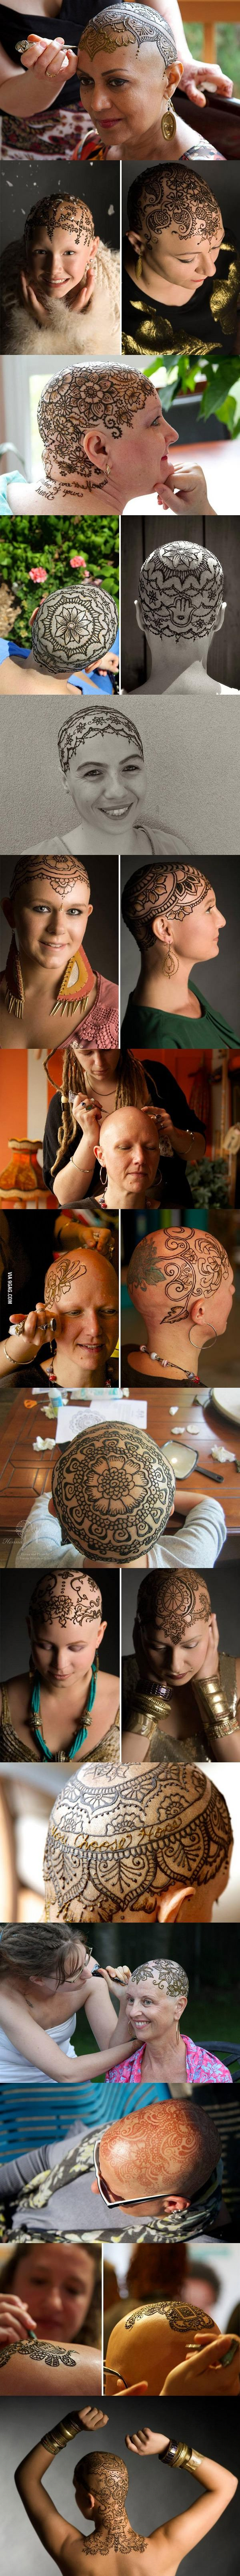 Elegant Henna Tattoo Crowns Help Cancer Patients Cope With Their Hair Loss. This is beautiful!